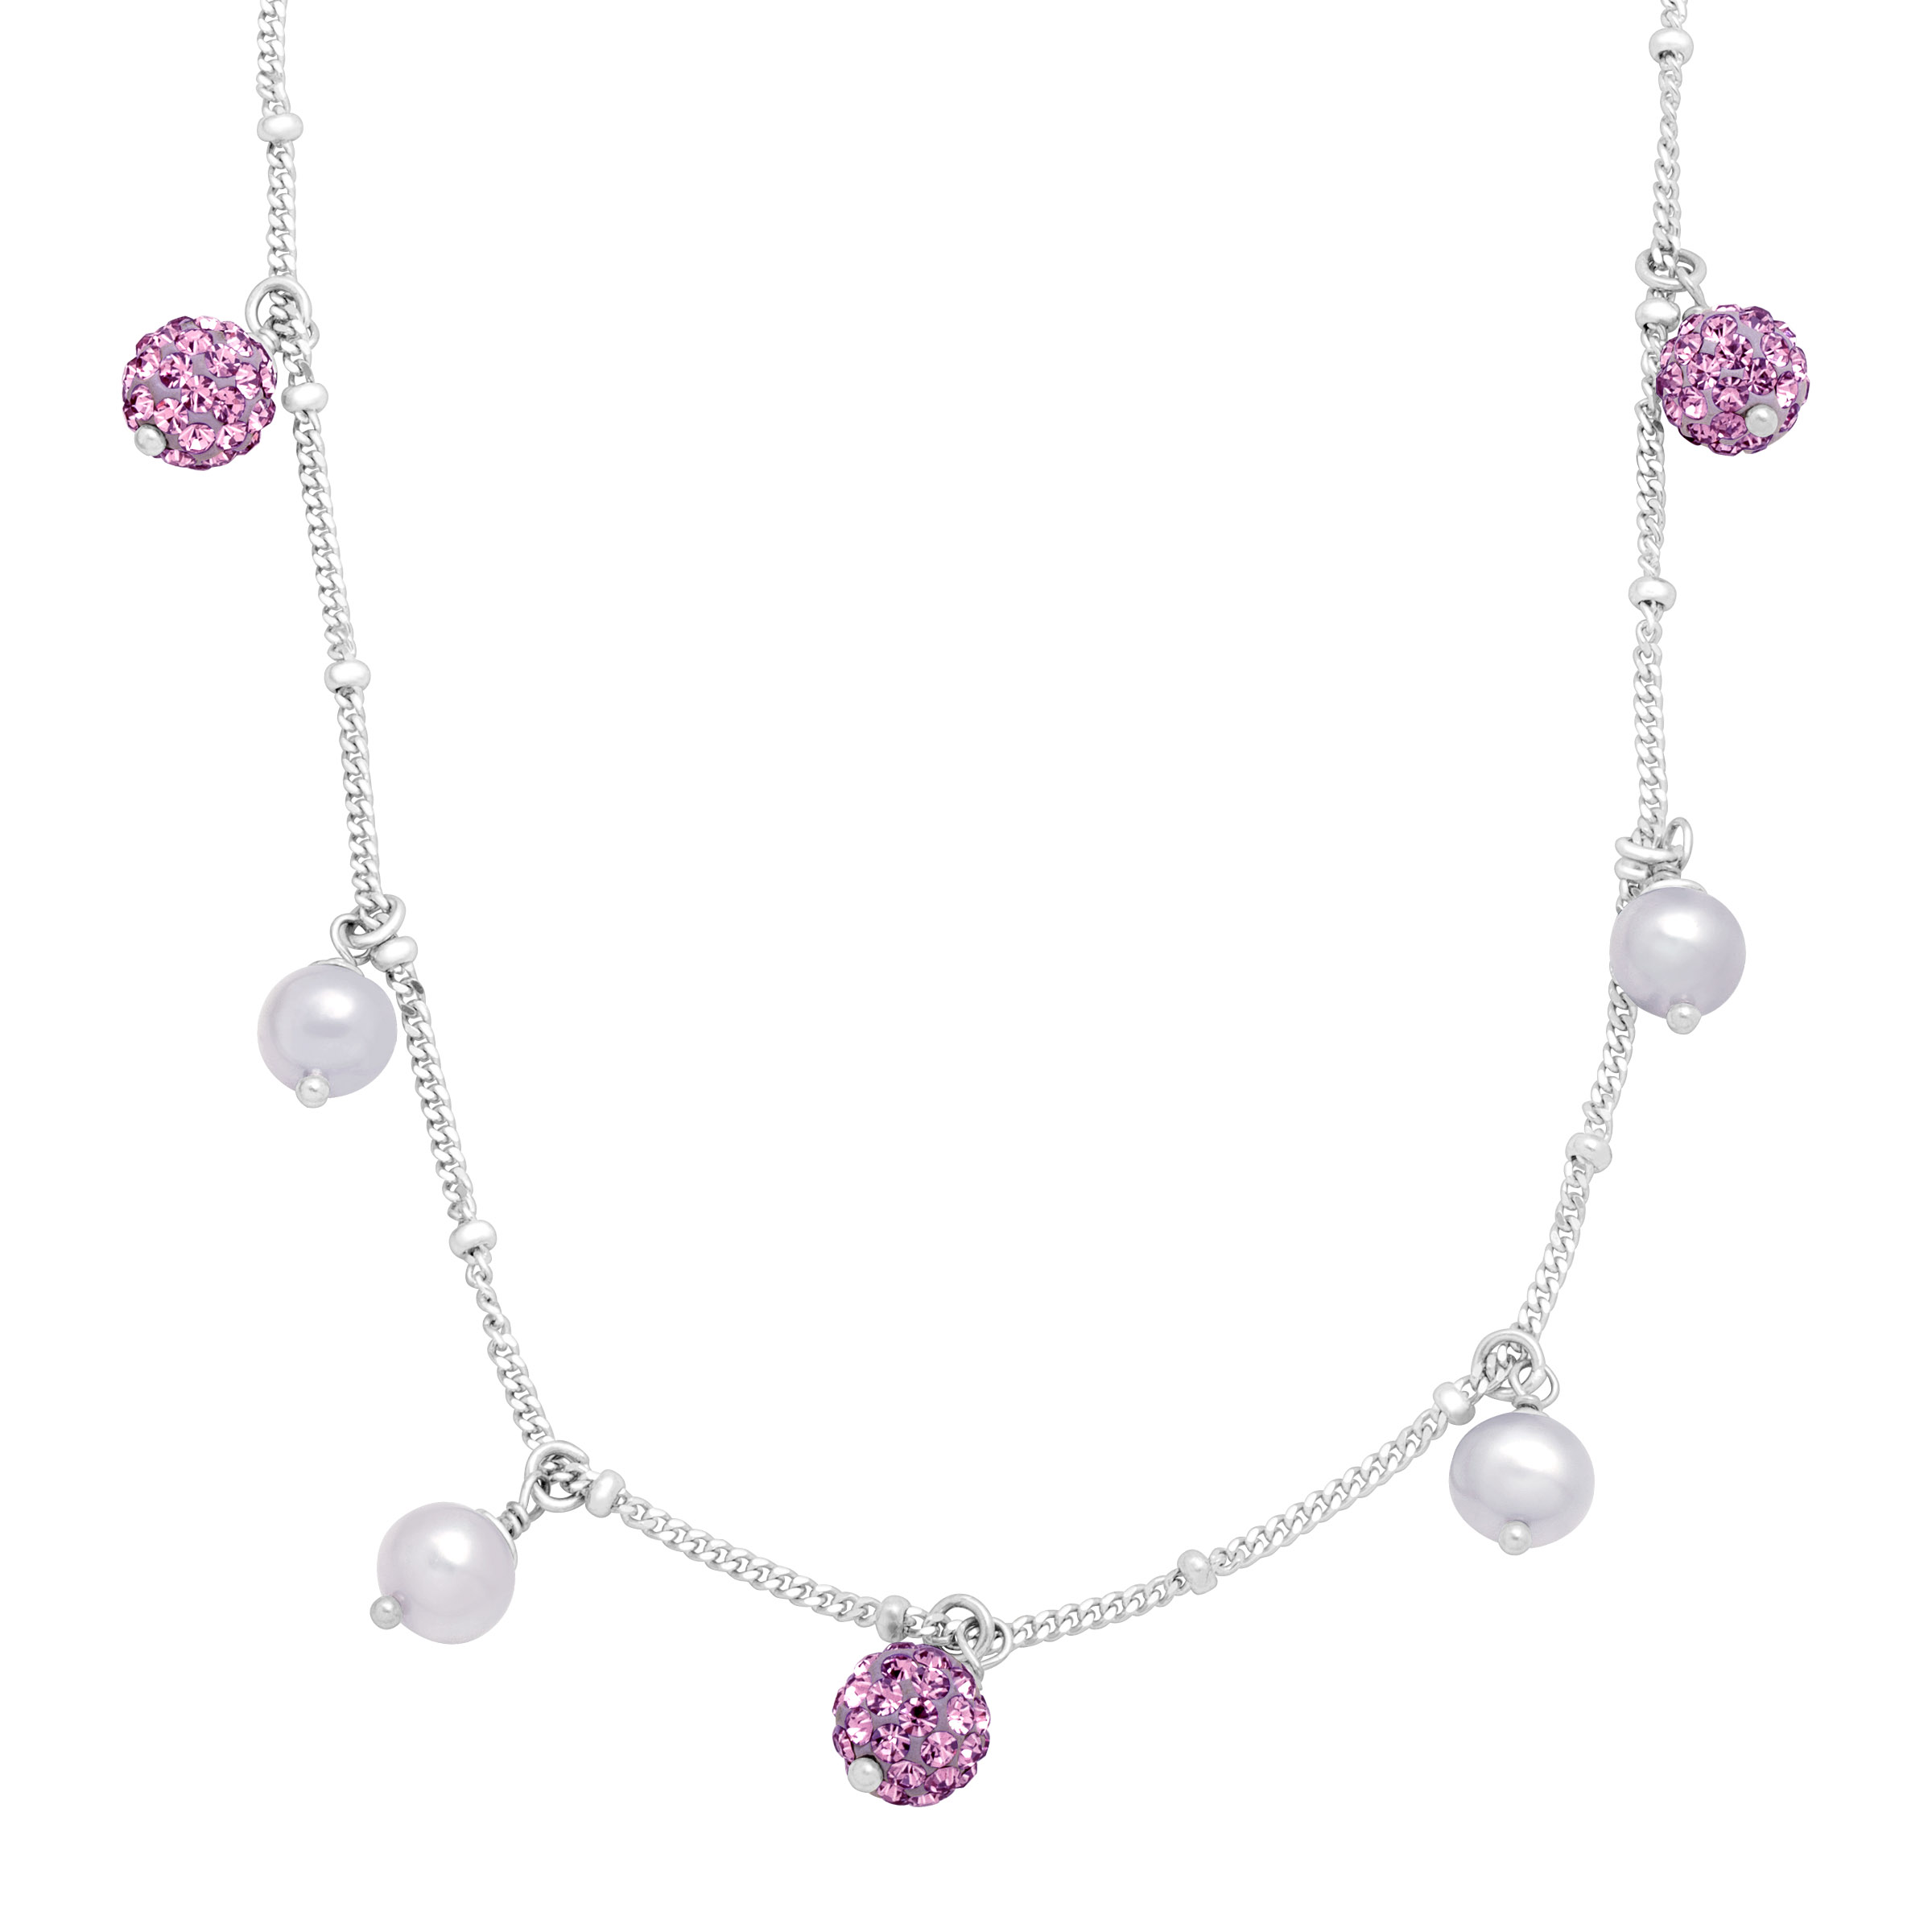 Luminesse Girl's Lilac Freshwater Pearl Necklace with Purple Swarovski Crystals in Sterling Silver